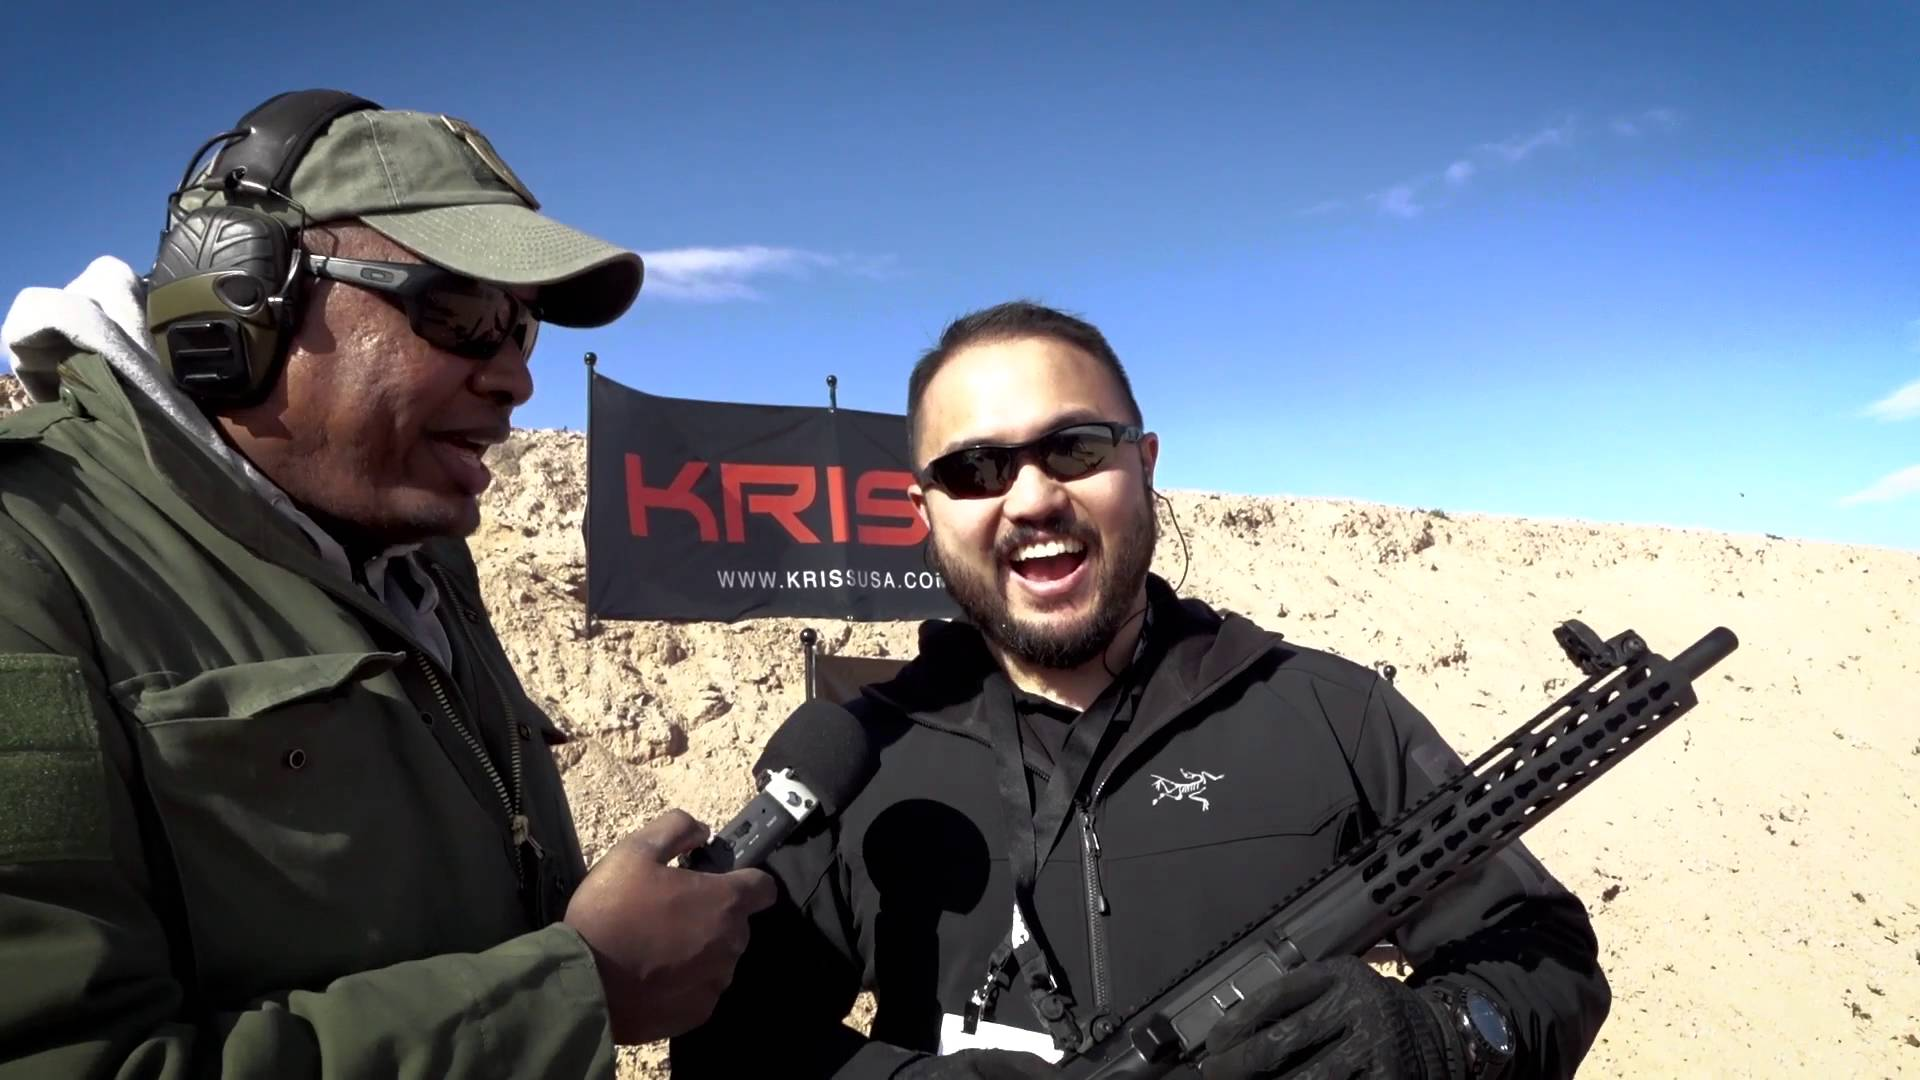 Defiance DMK 22 Rifle SHOT Show 2016 Media Day